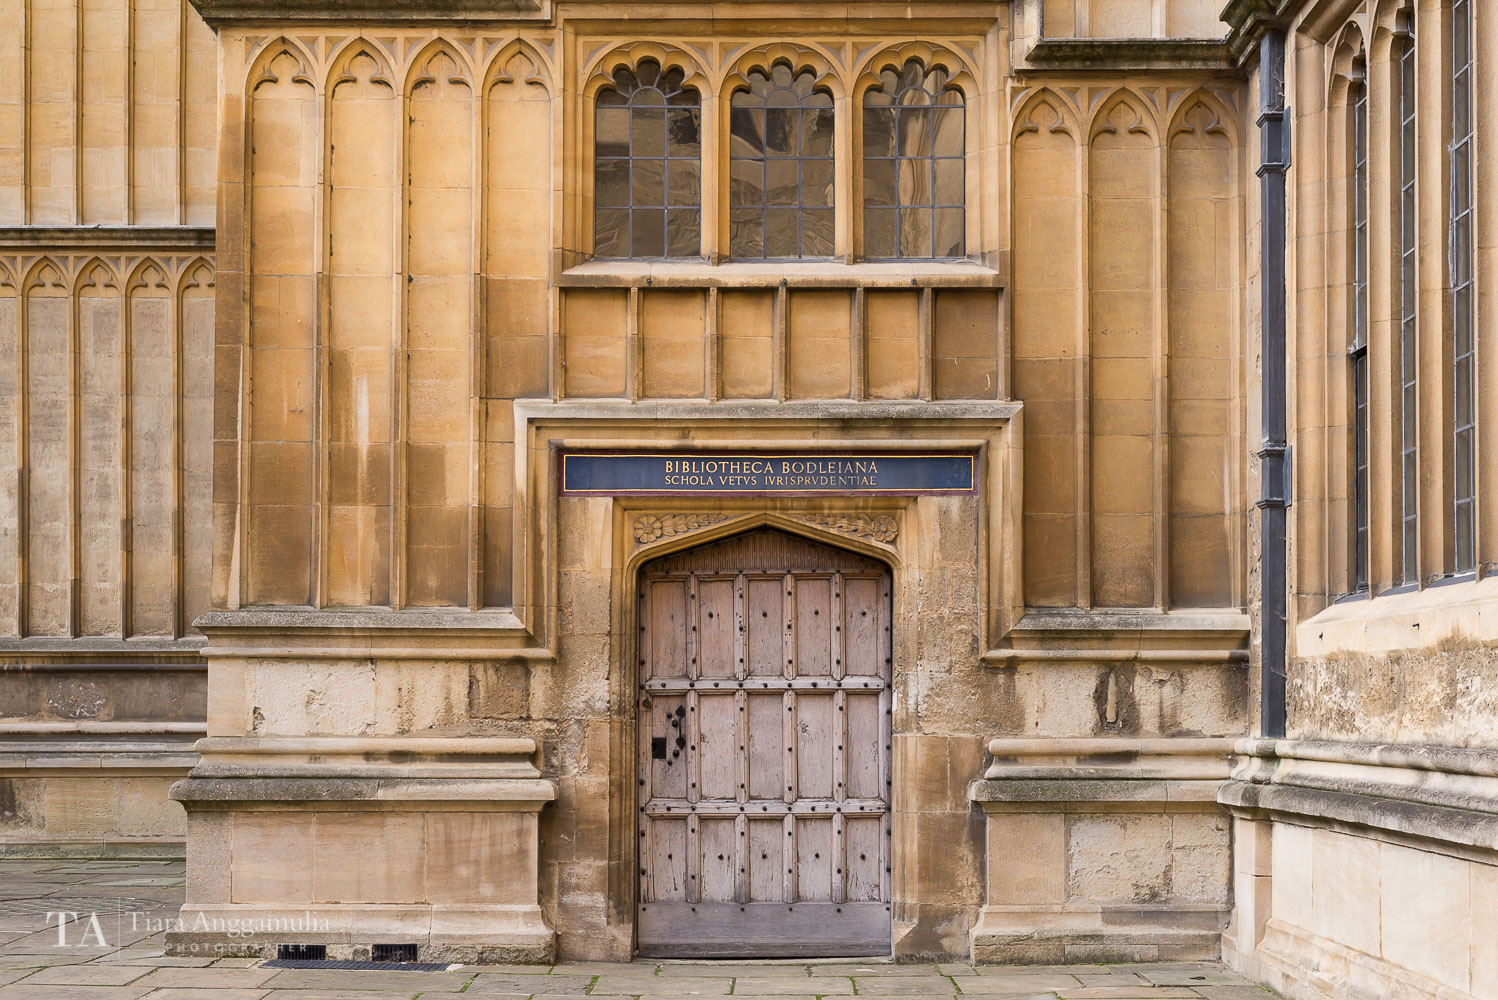 The courtyard of Bodleian Library.